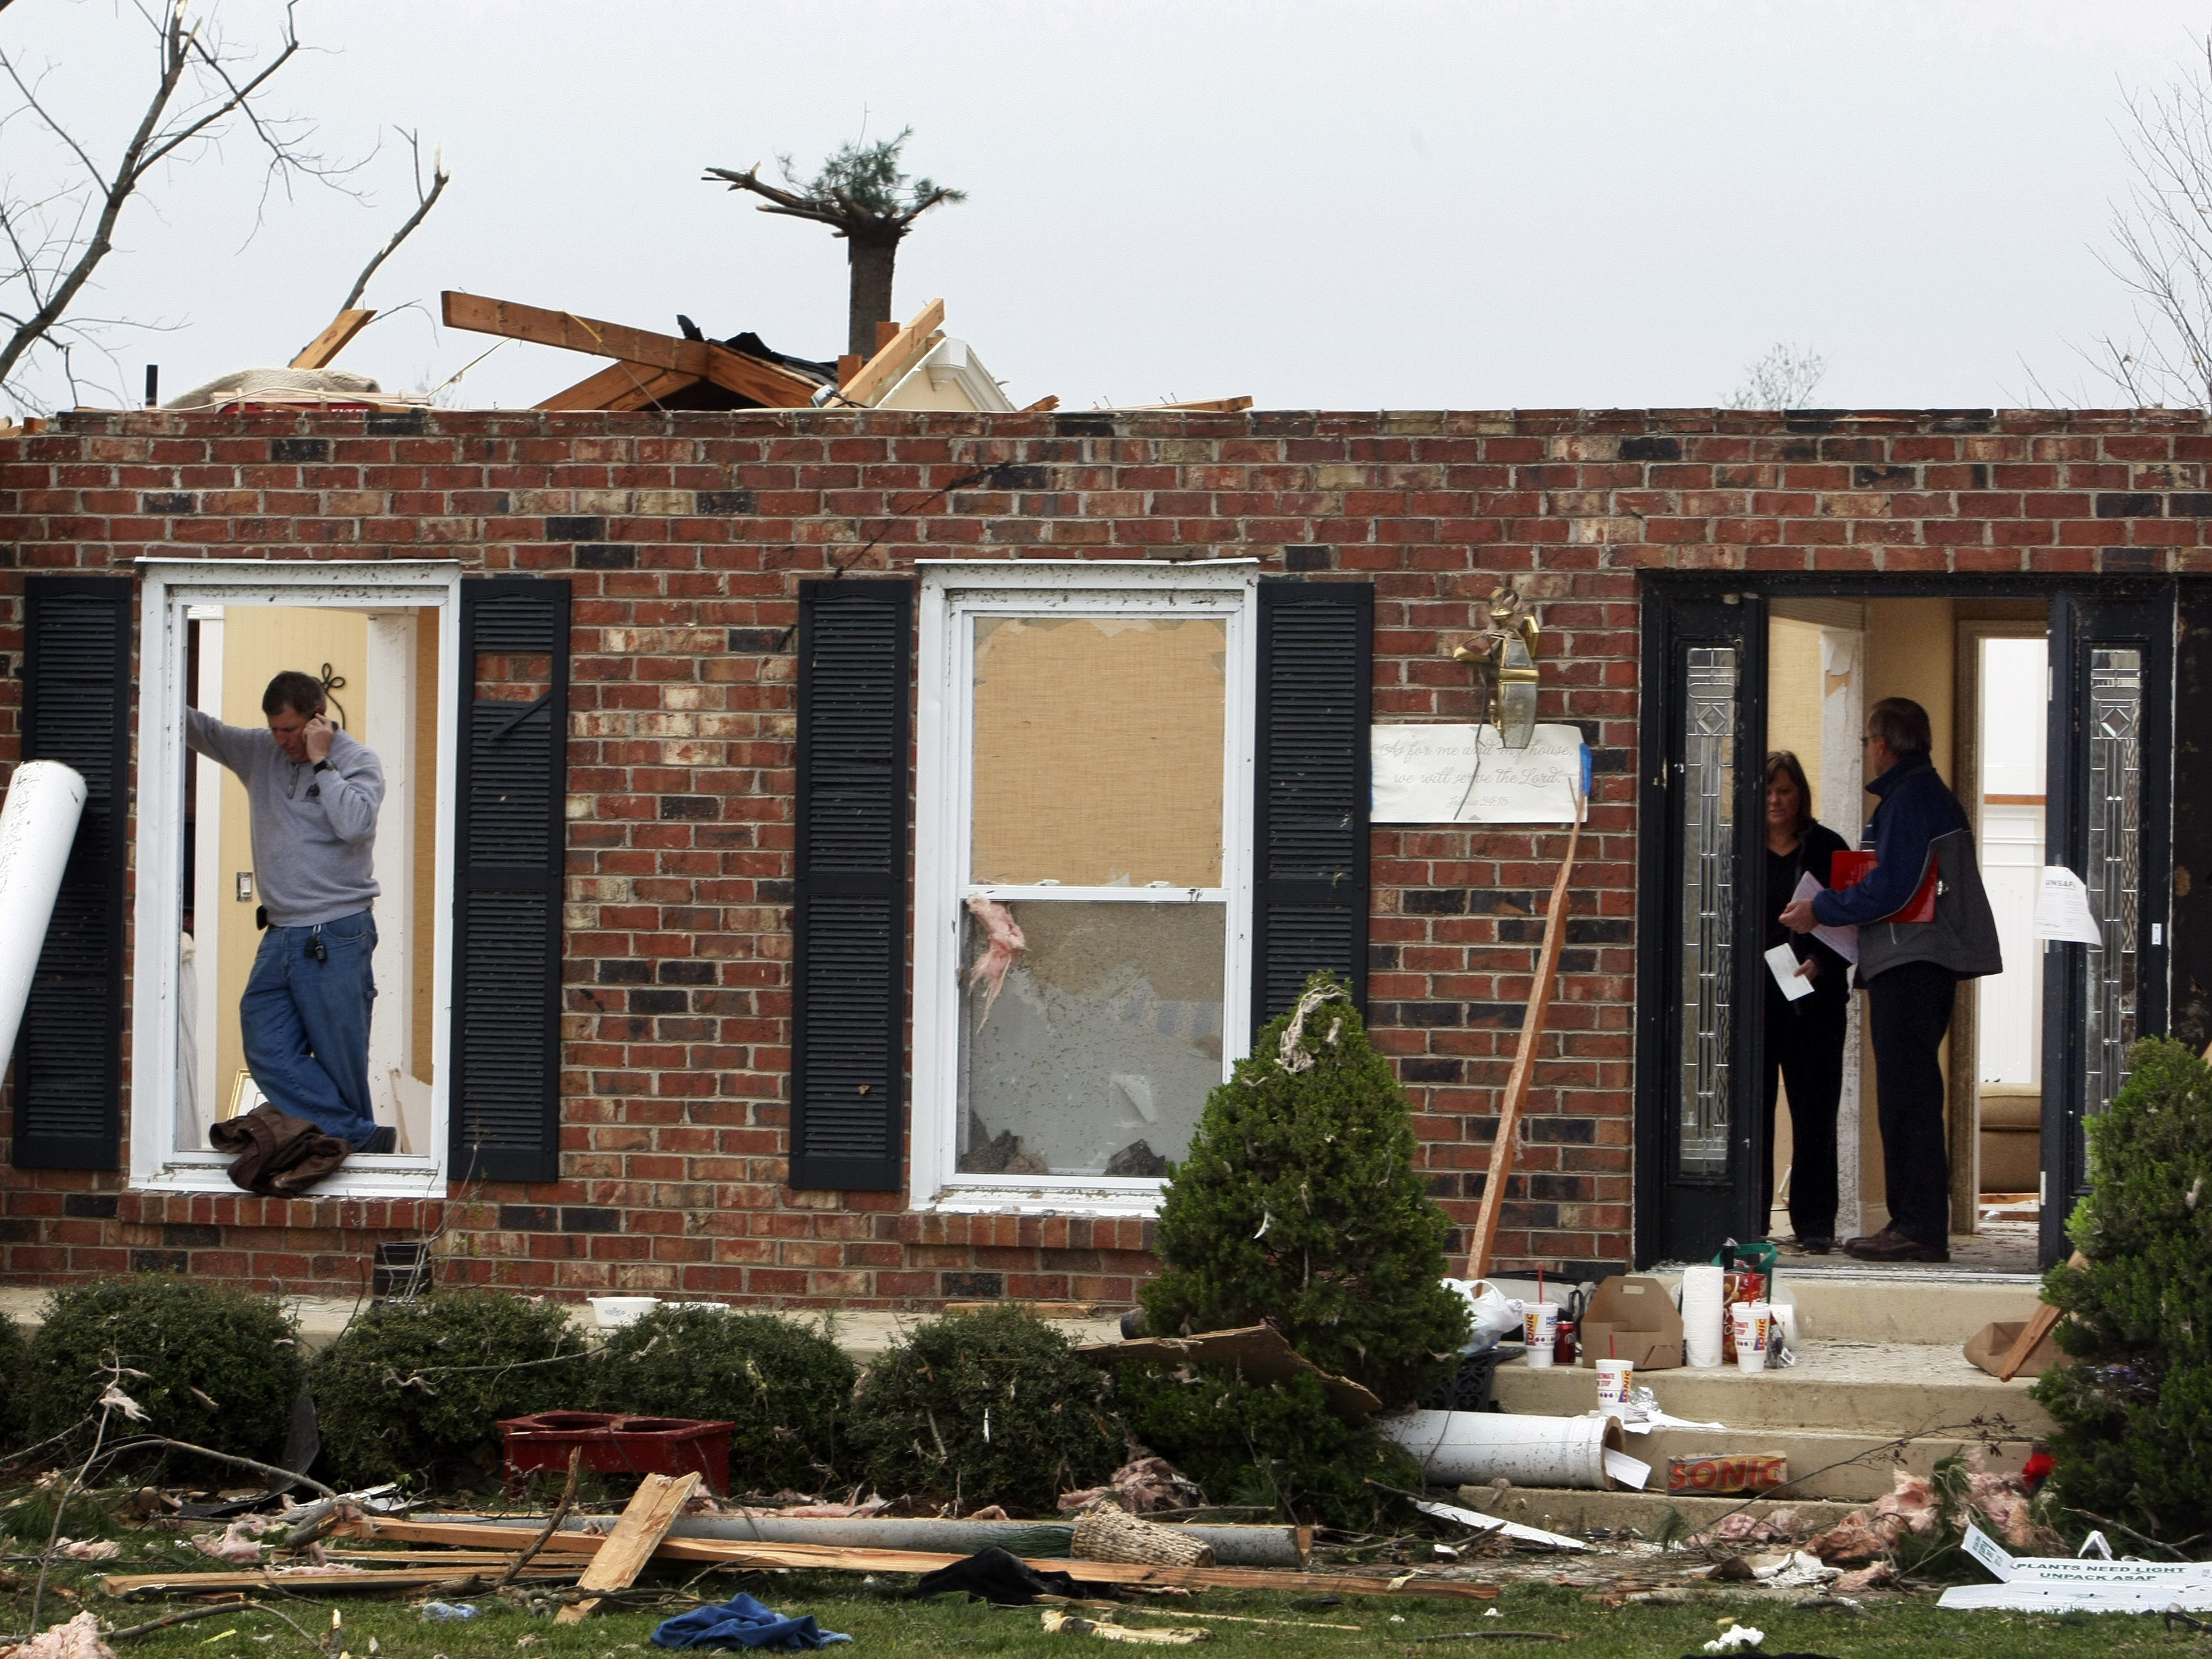 Chris Bloebaum, left, talks on his cell phone as his wife Jenny talks with State Farm Representative J. E. Fields about the loss of their home a day after a tornado roared through Murfreesboro.